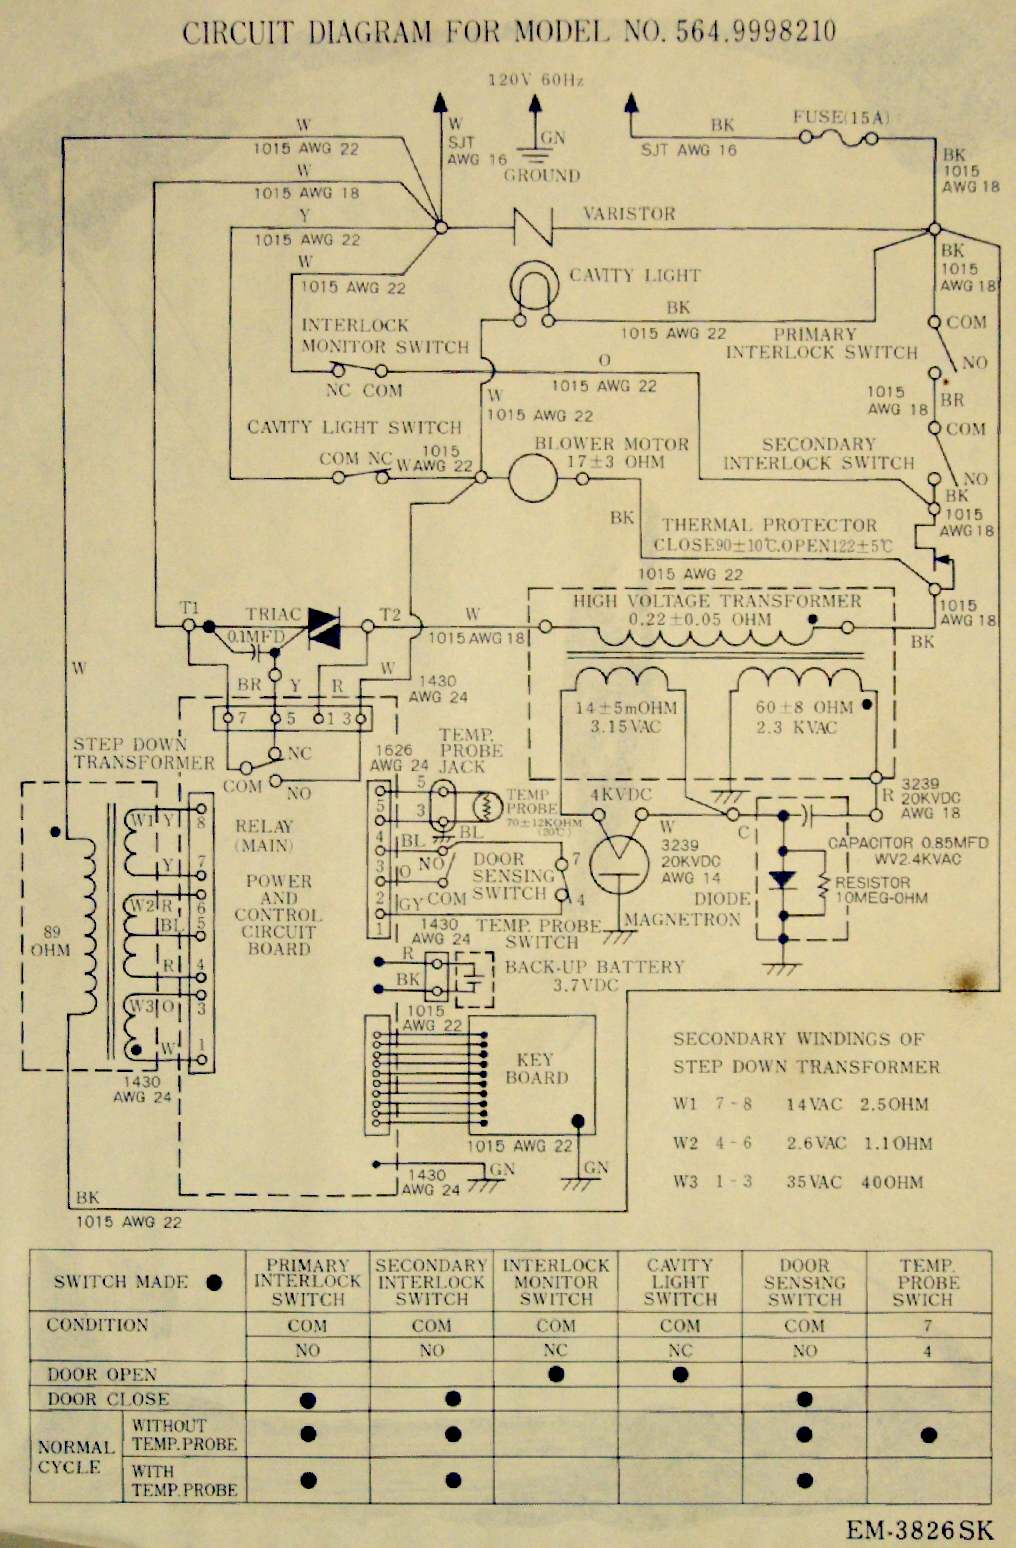 cimg1968 microwave oven schematic?w=315 resistance soldering transformer the smell of molten projects daewoo microwave wiring diagram at gsmportal.co